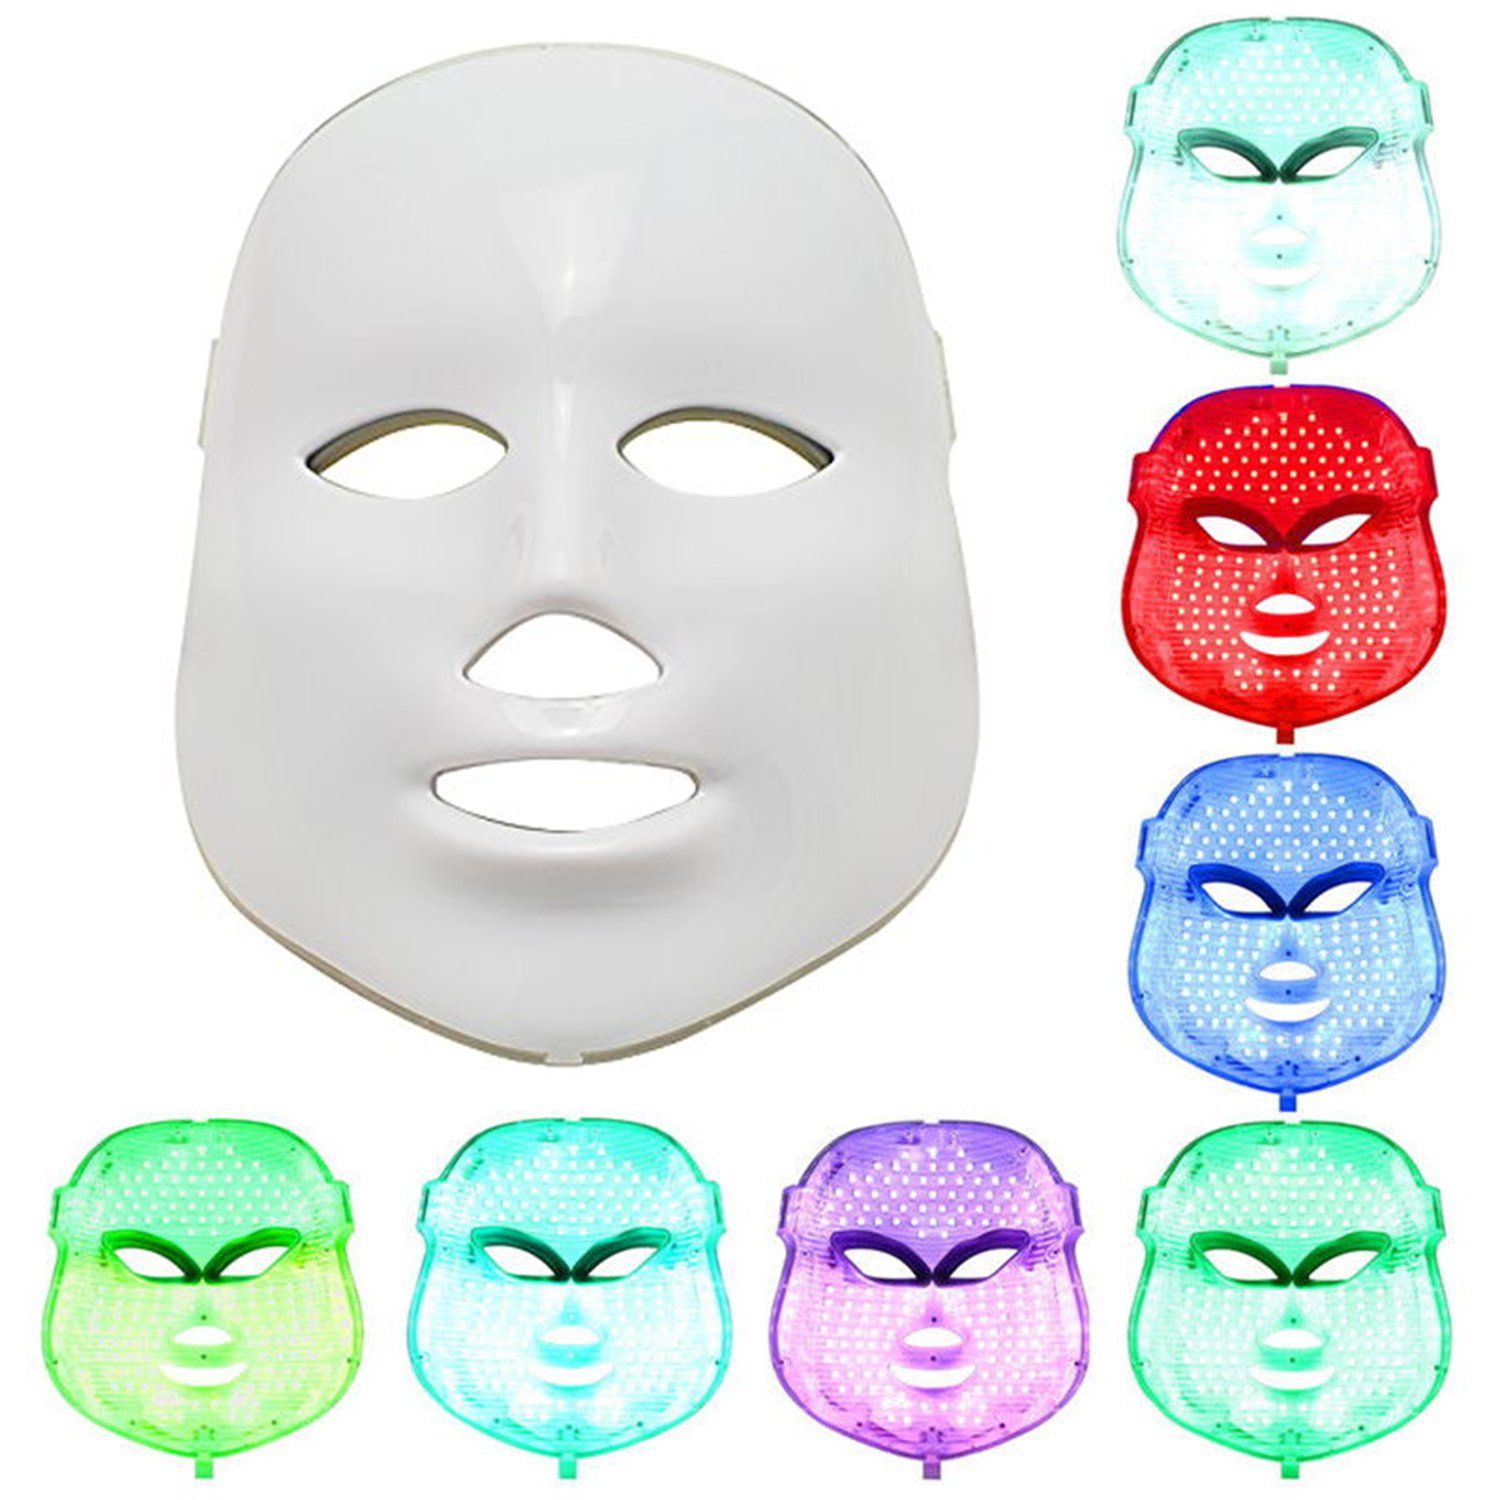 NEWEST LED Photon Therapy 7 Colors ( Red Blue Green )Light Treatment Facial Beauty Skin Care Rejuvenation Pototherapy Mask PDT Beauty Face Care for Home by Angel Kiss (Image #1)